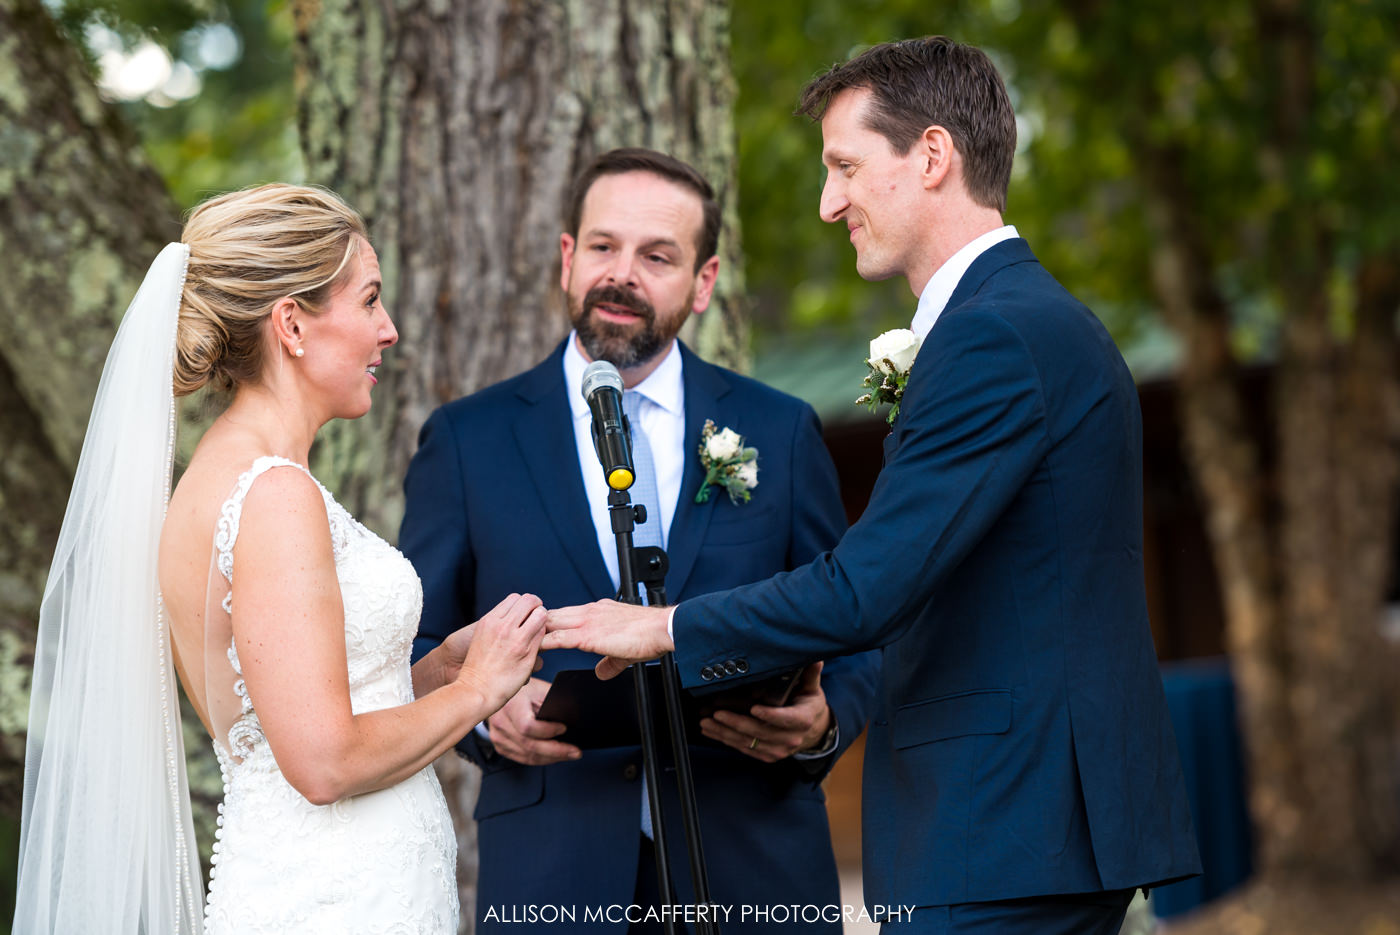 Exchanging rings photo at Rose Bank Winery